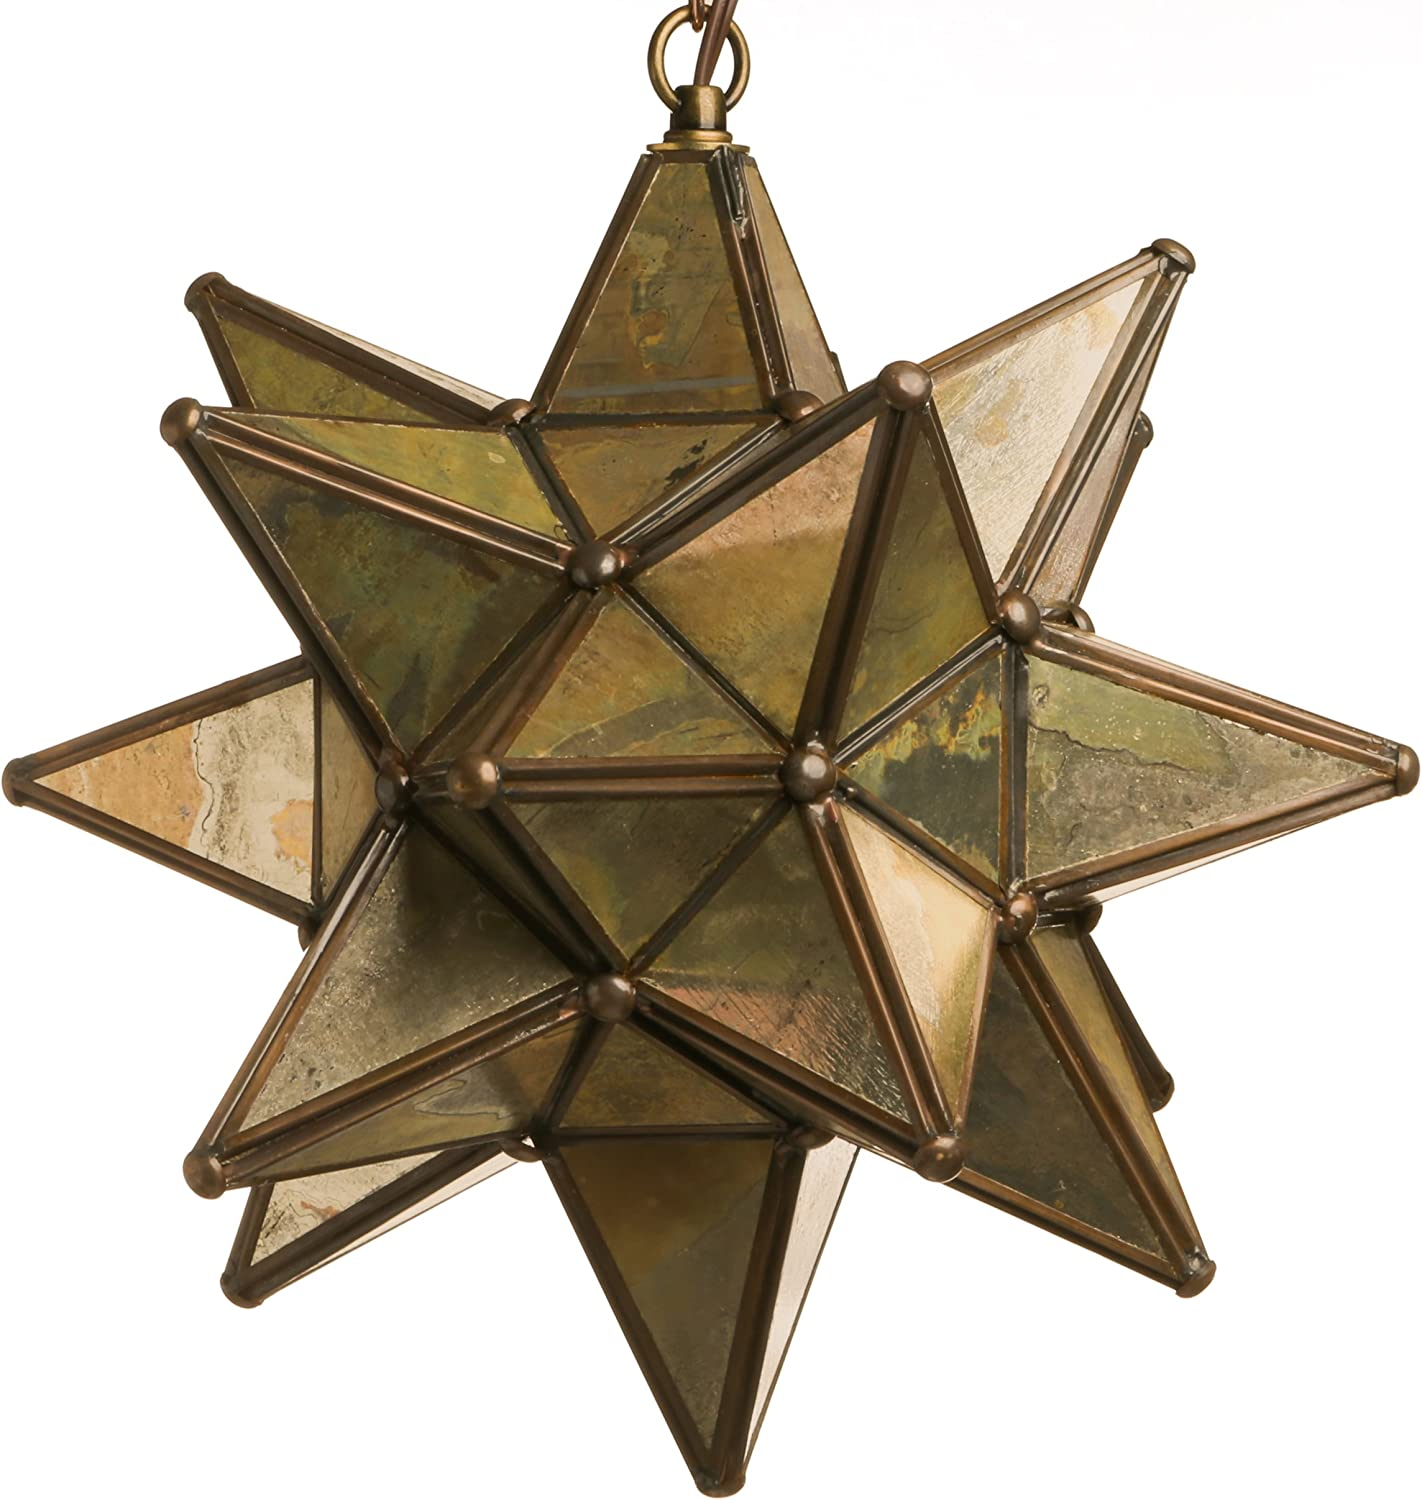 Glass Star Pendant Lights 15 Inch, Mirror